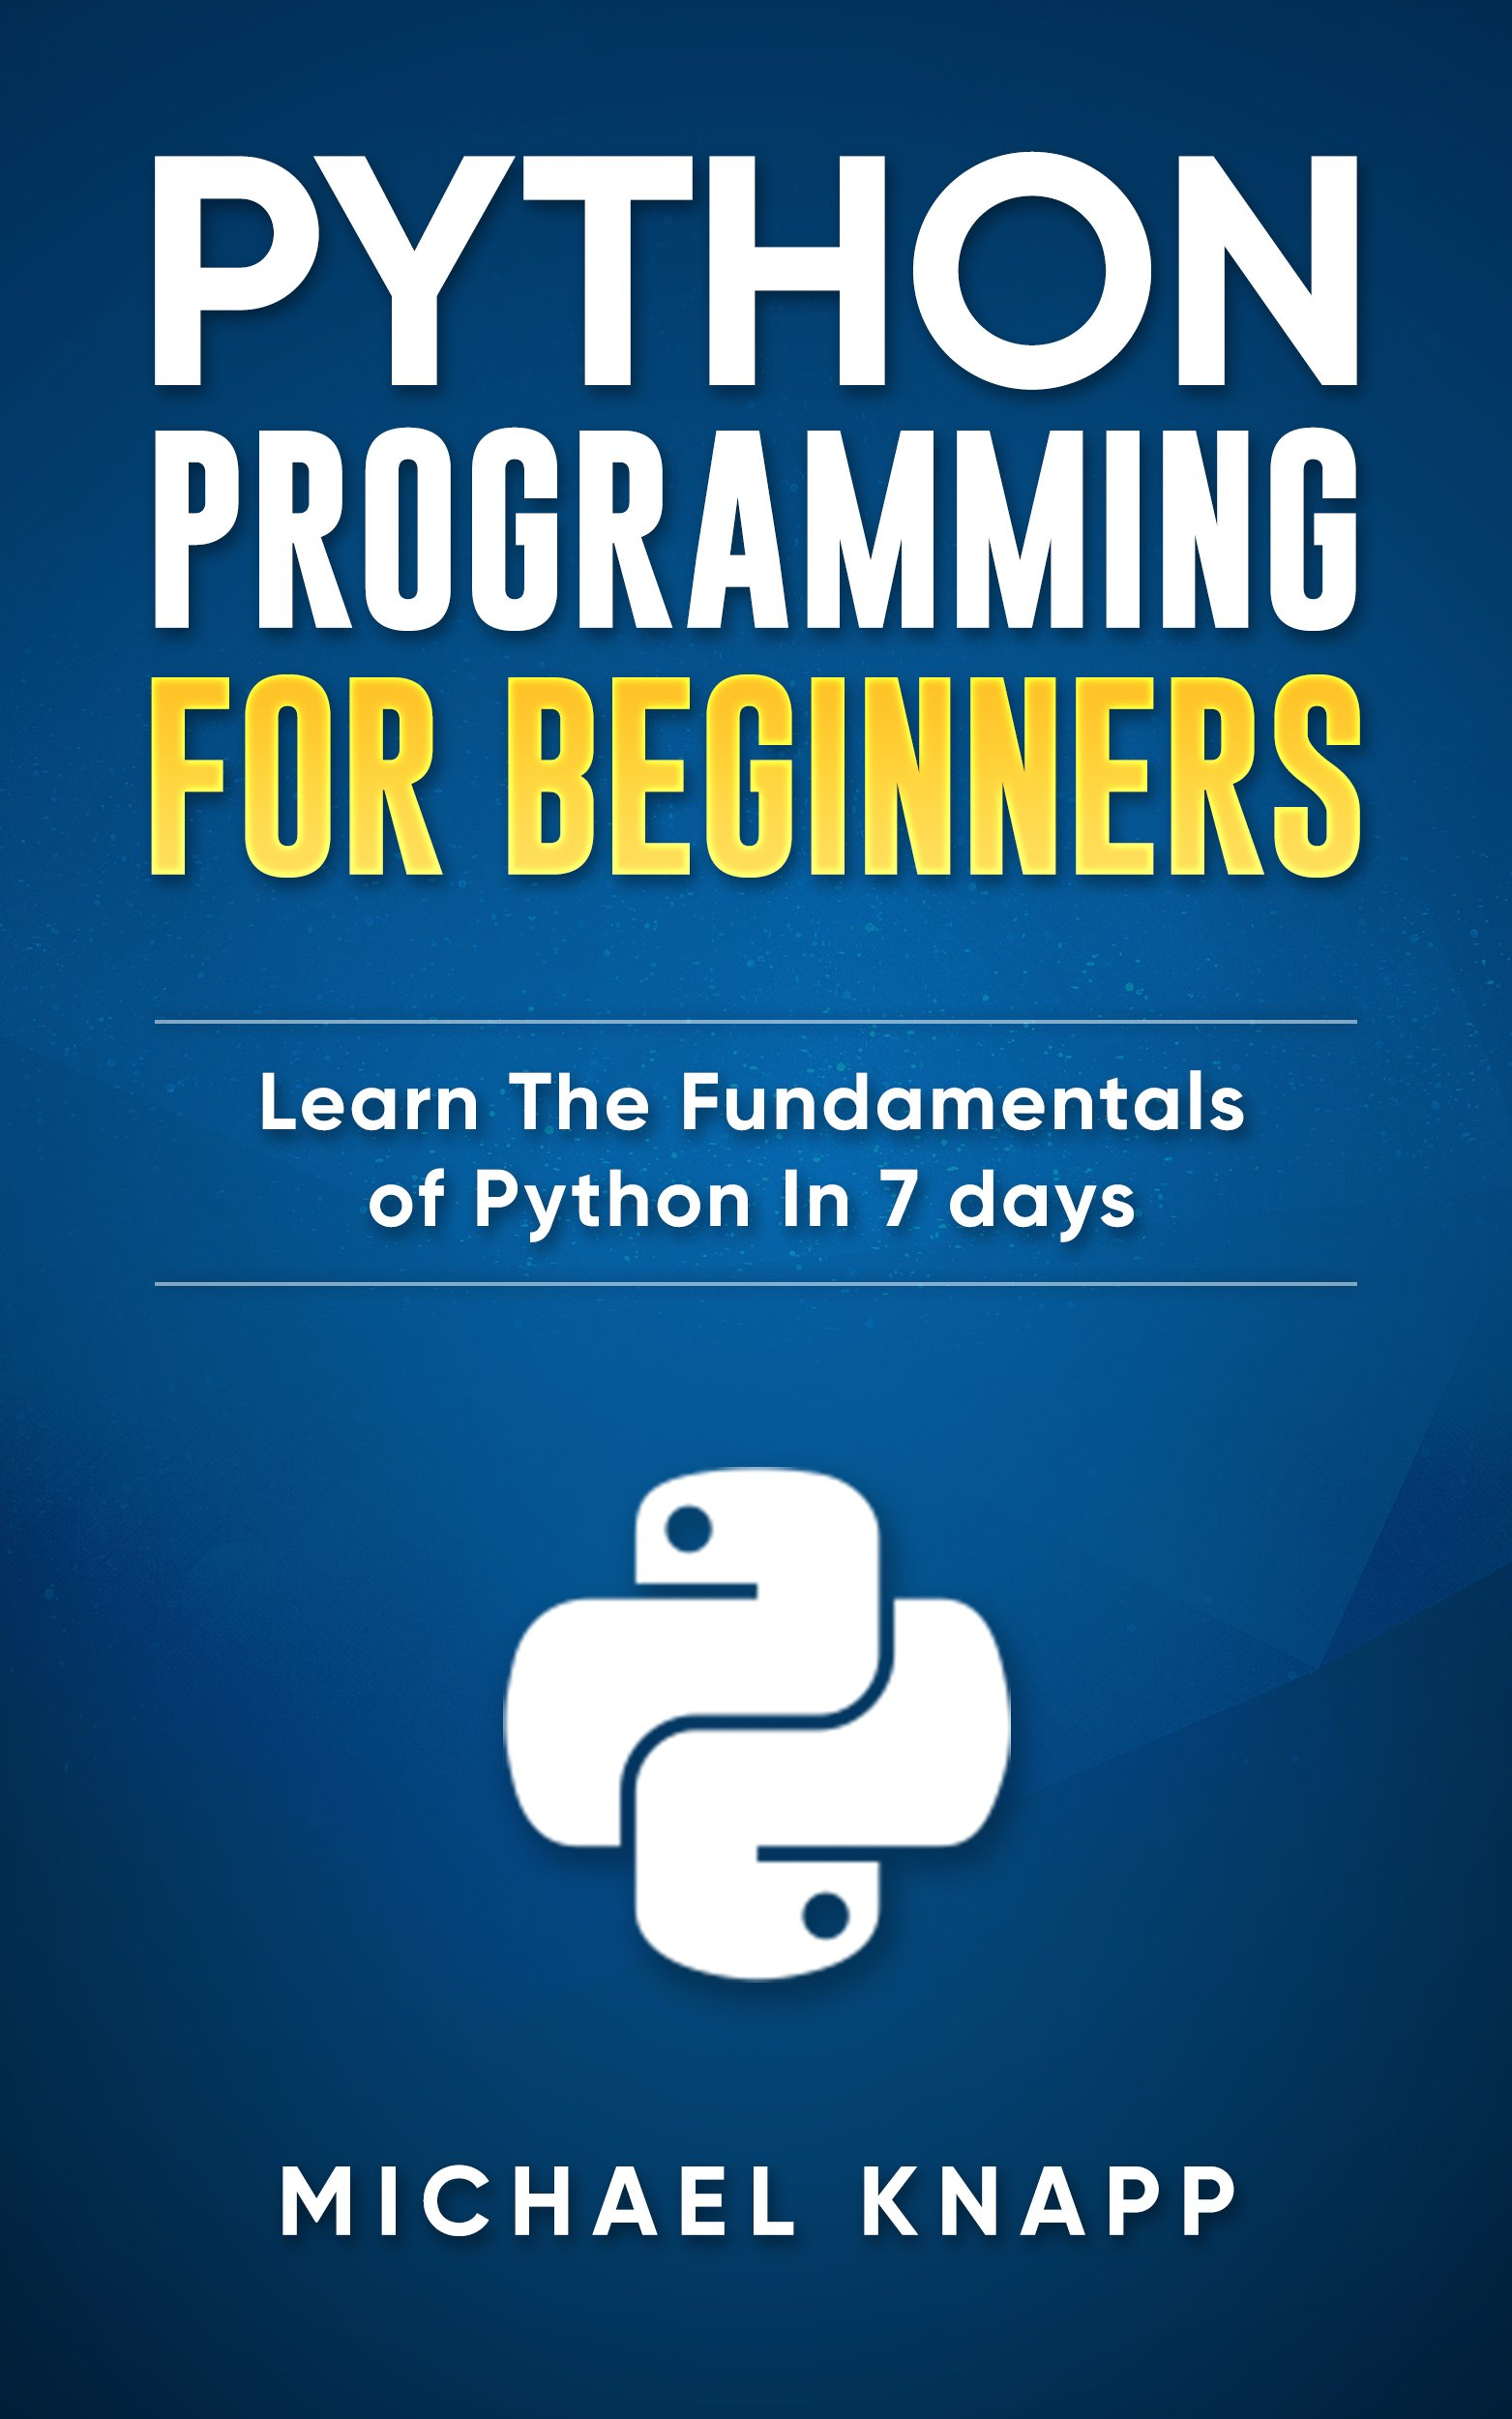 Python: Programming For Beginners: Learn The Fundamentals of Python in 7 Days